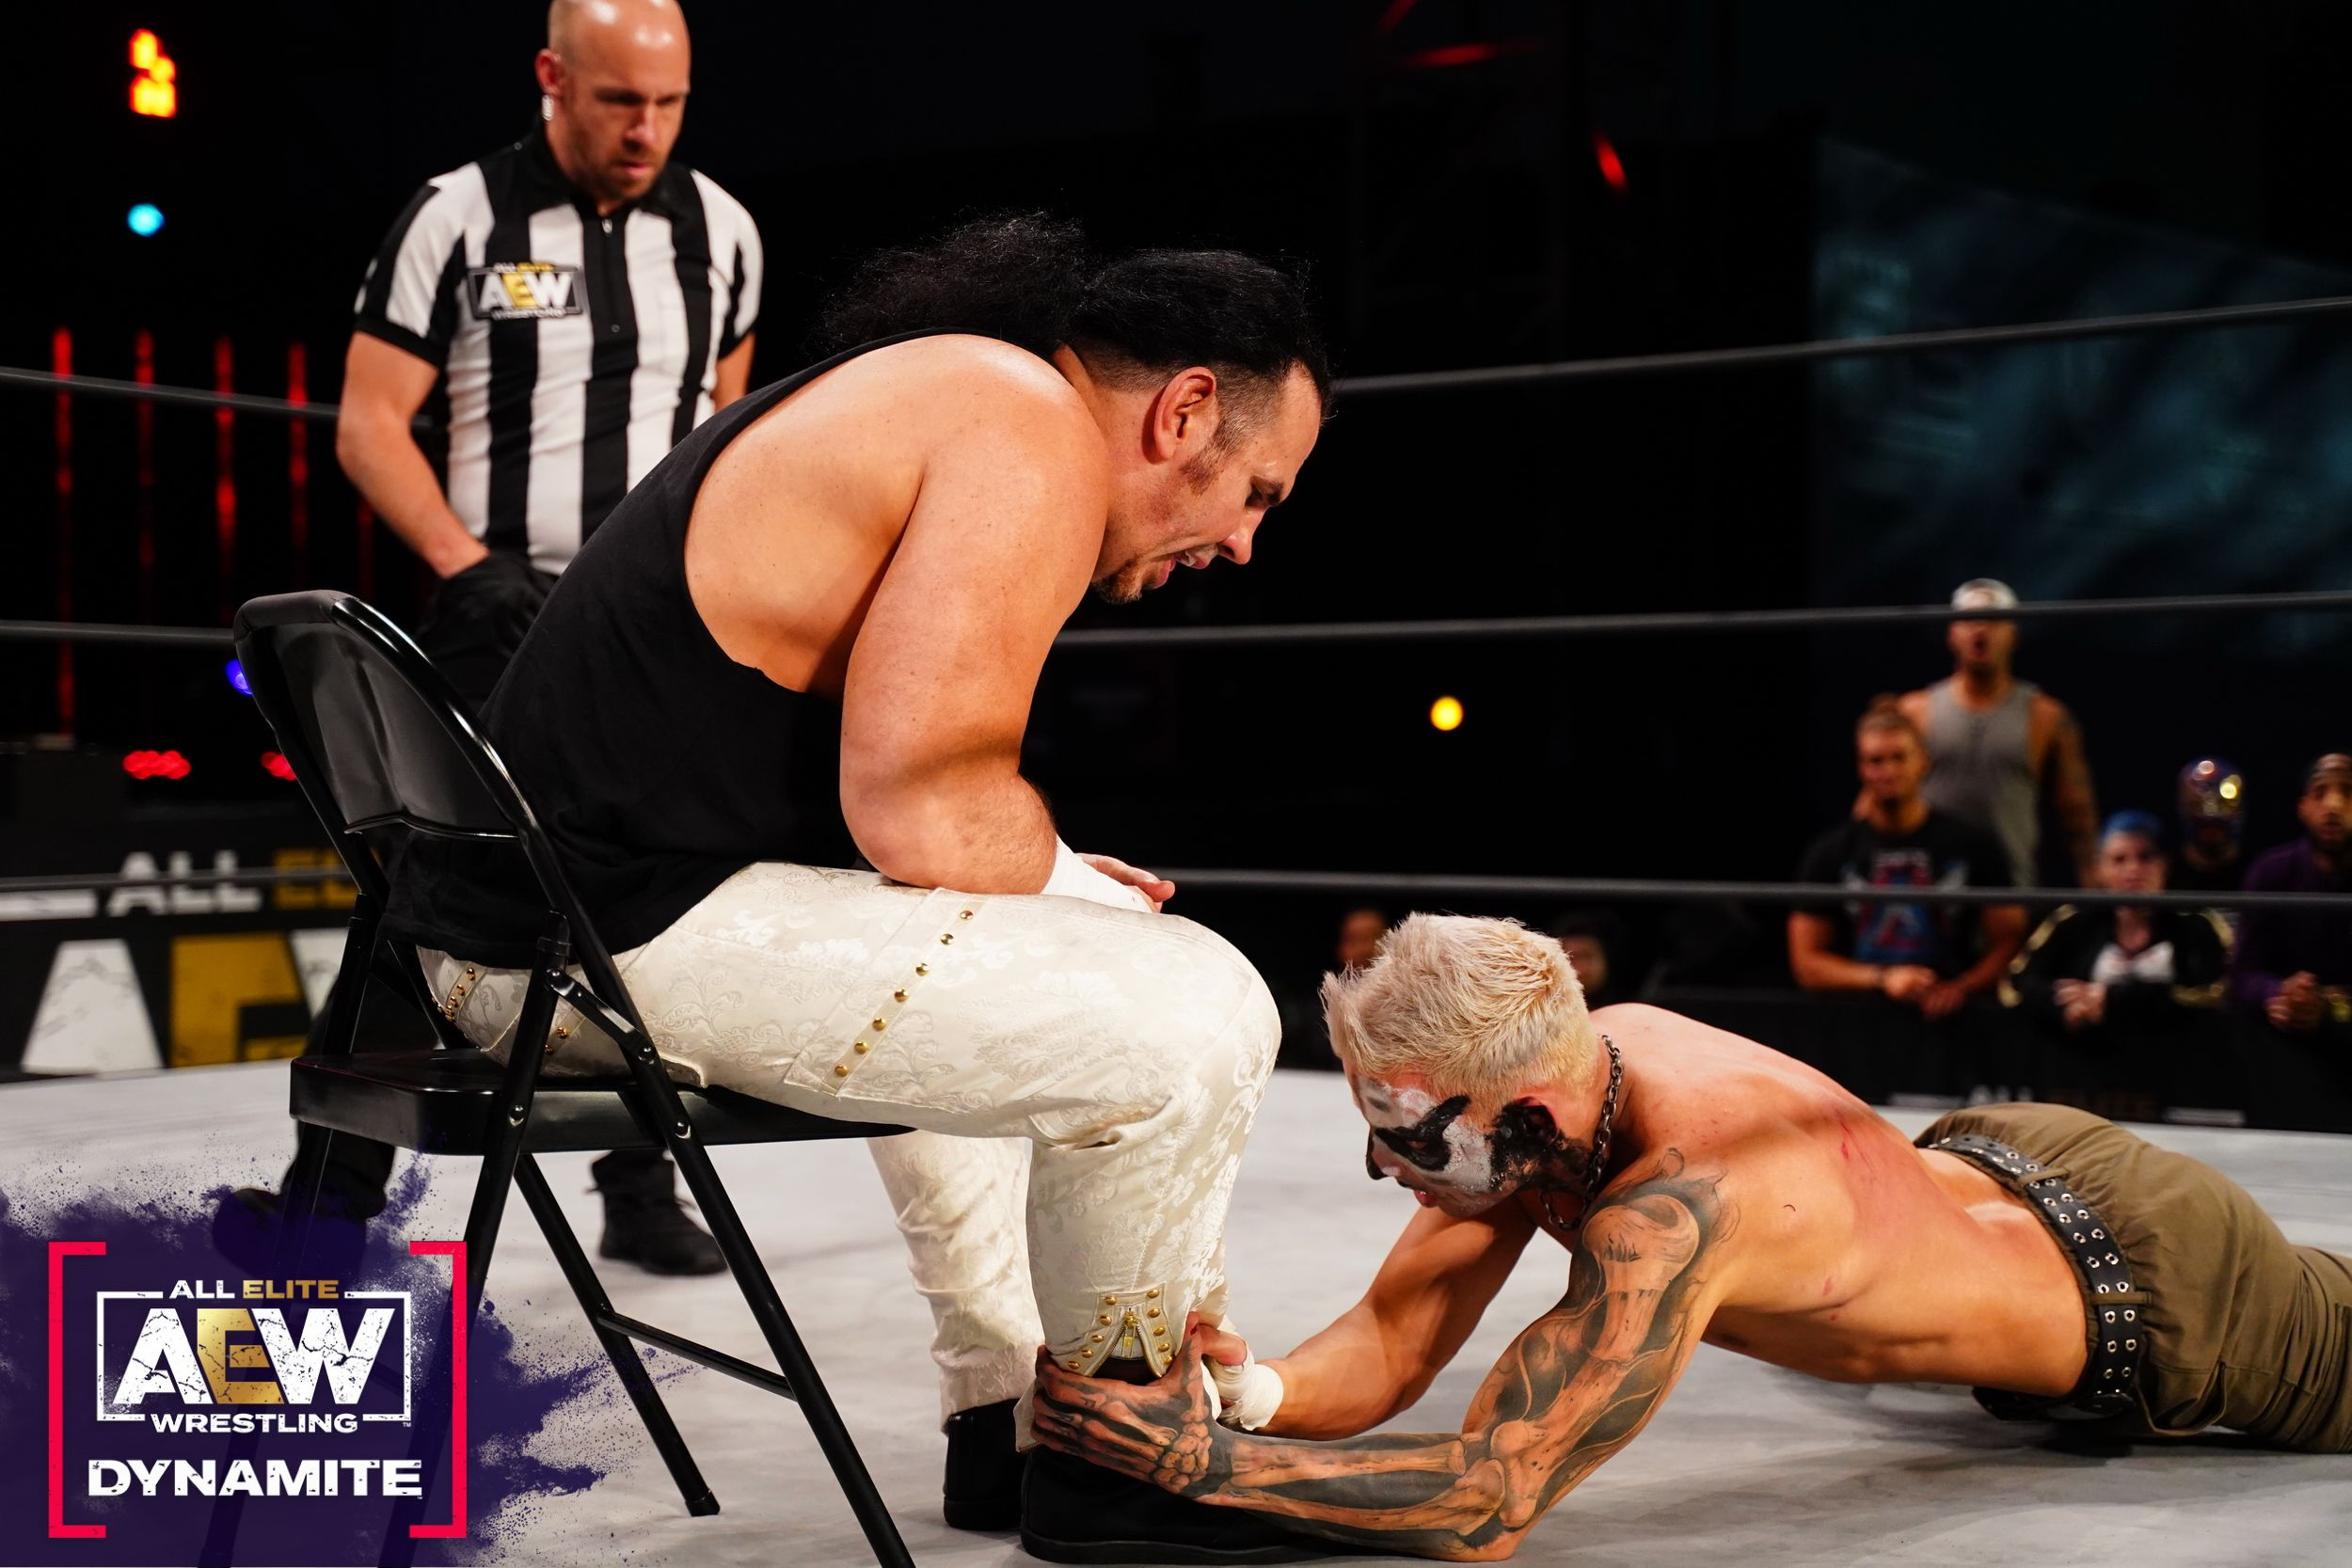 AEW interference